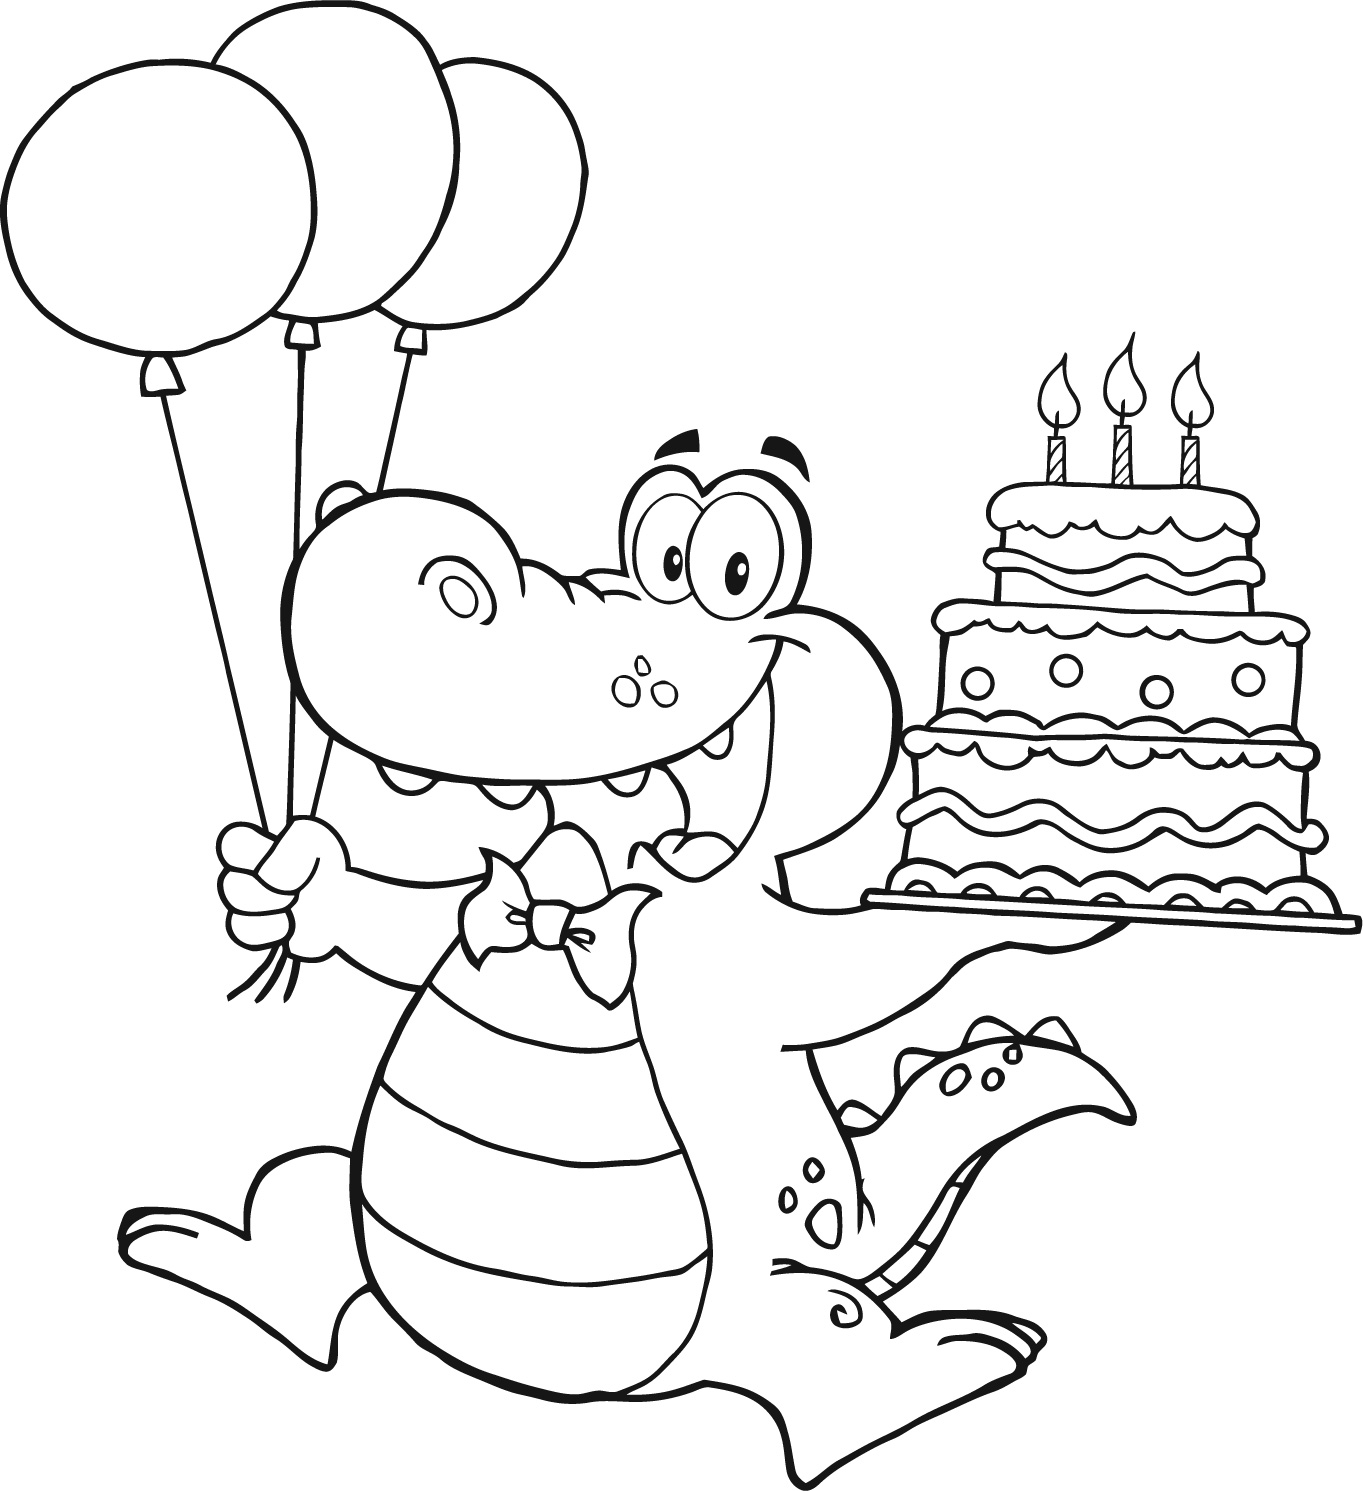 pupcake the dog coloring pages - photo#10